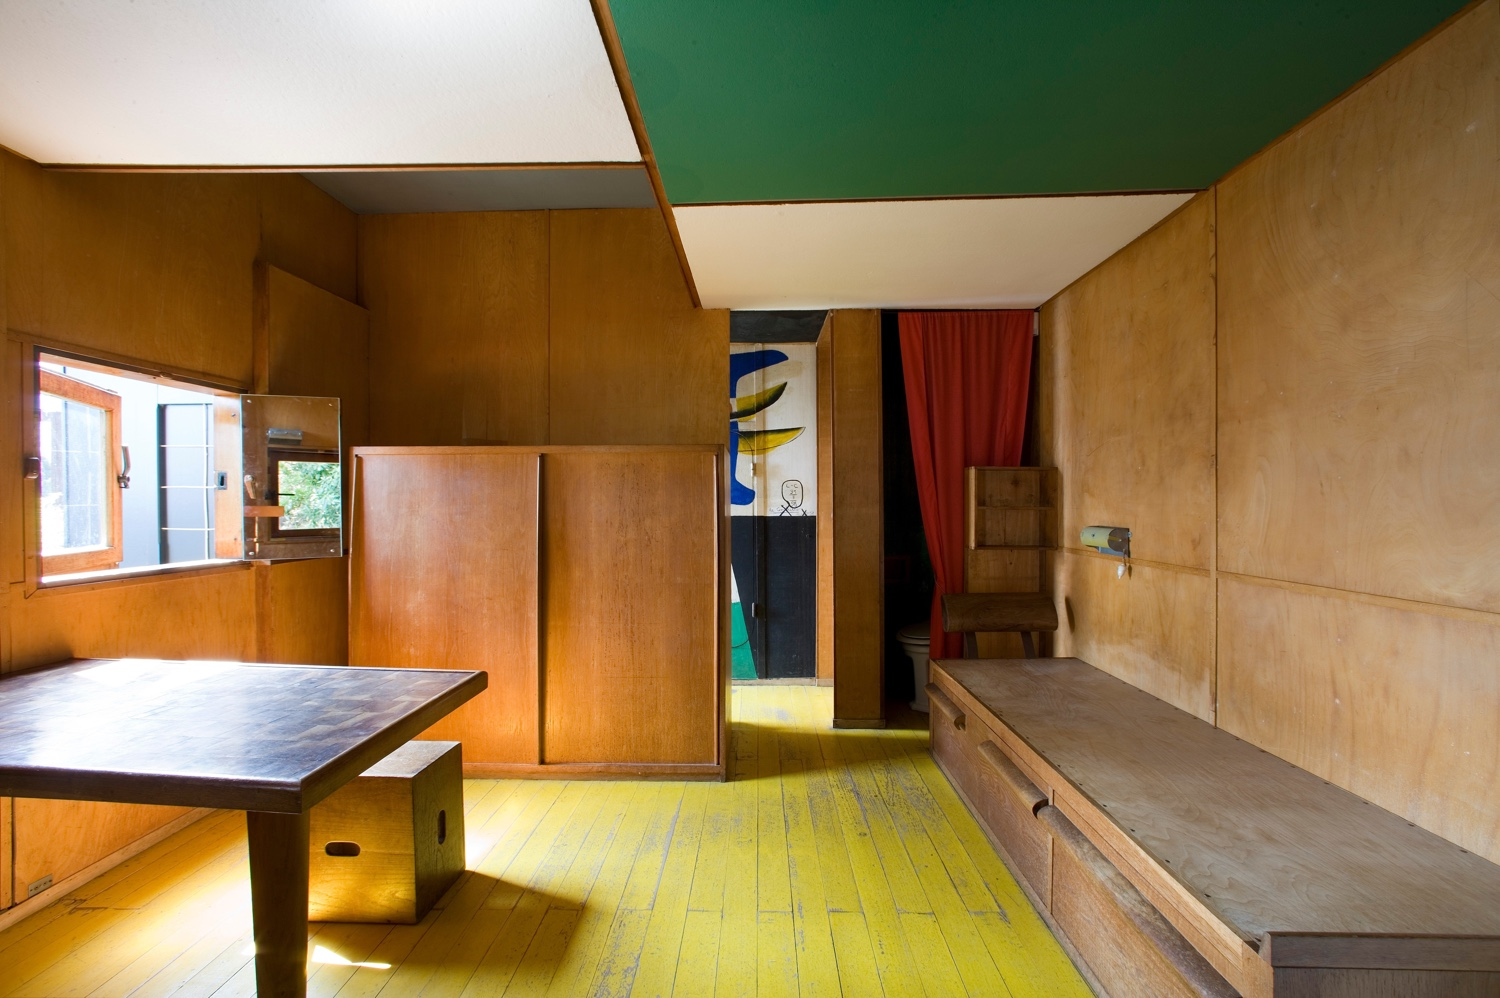 17 le corbusier buildings added to unesco world heritage list for Architecture interieur paris